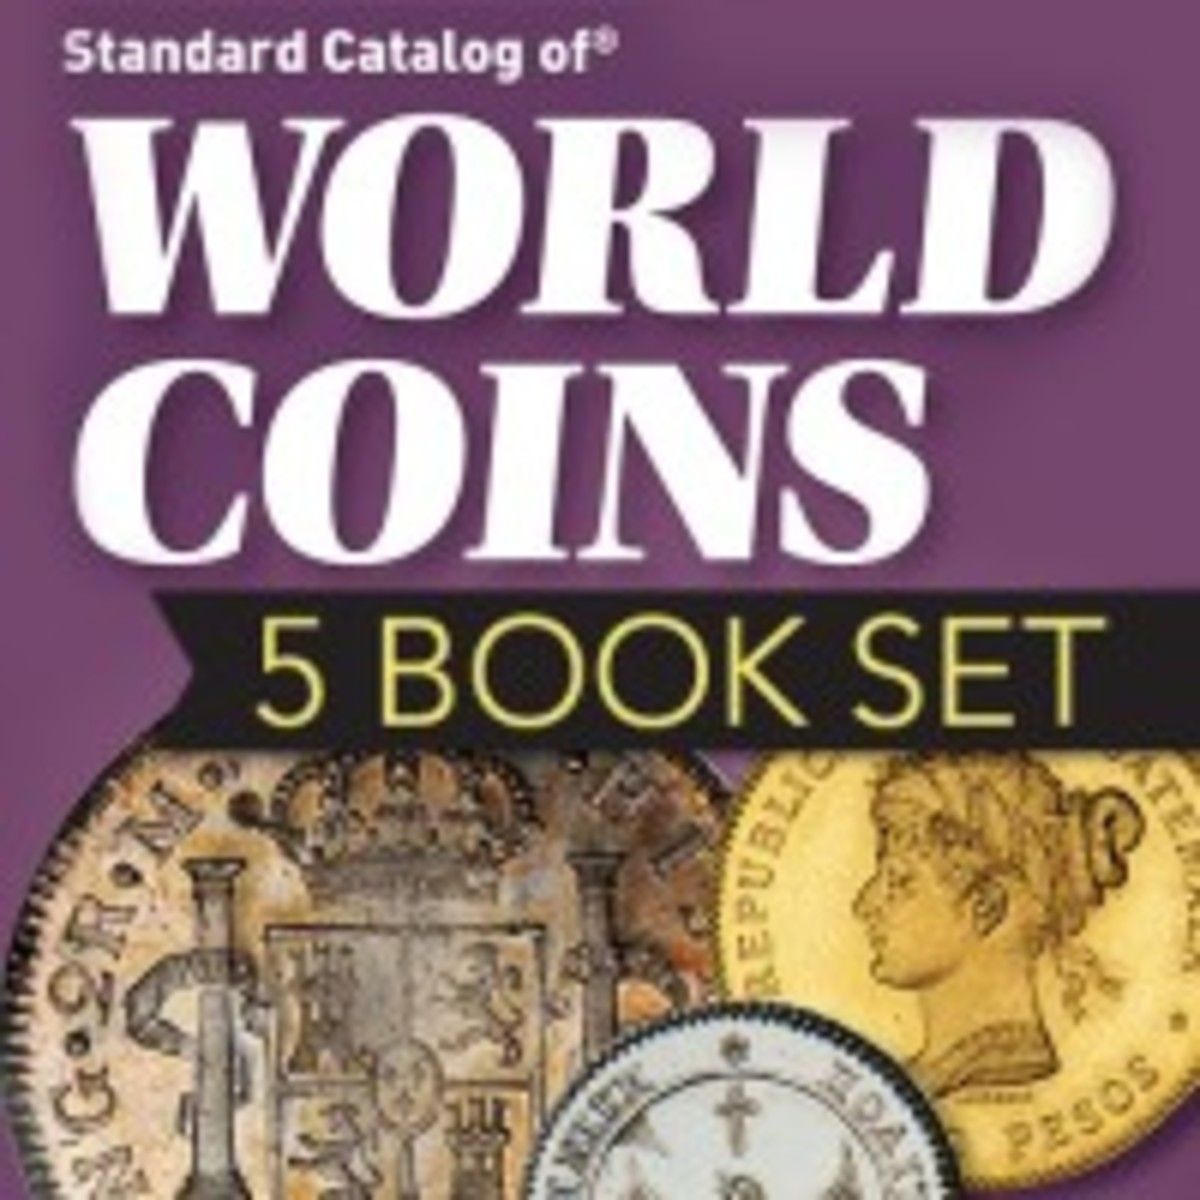 The famous five book Standard Catalog of World Coins collection is back!